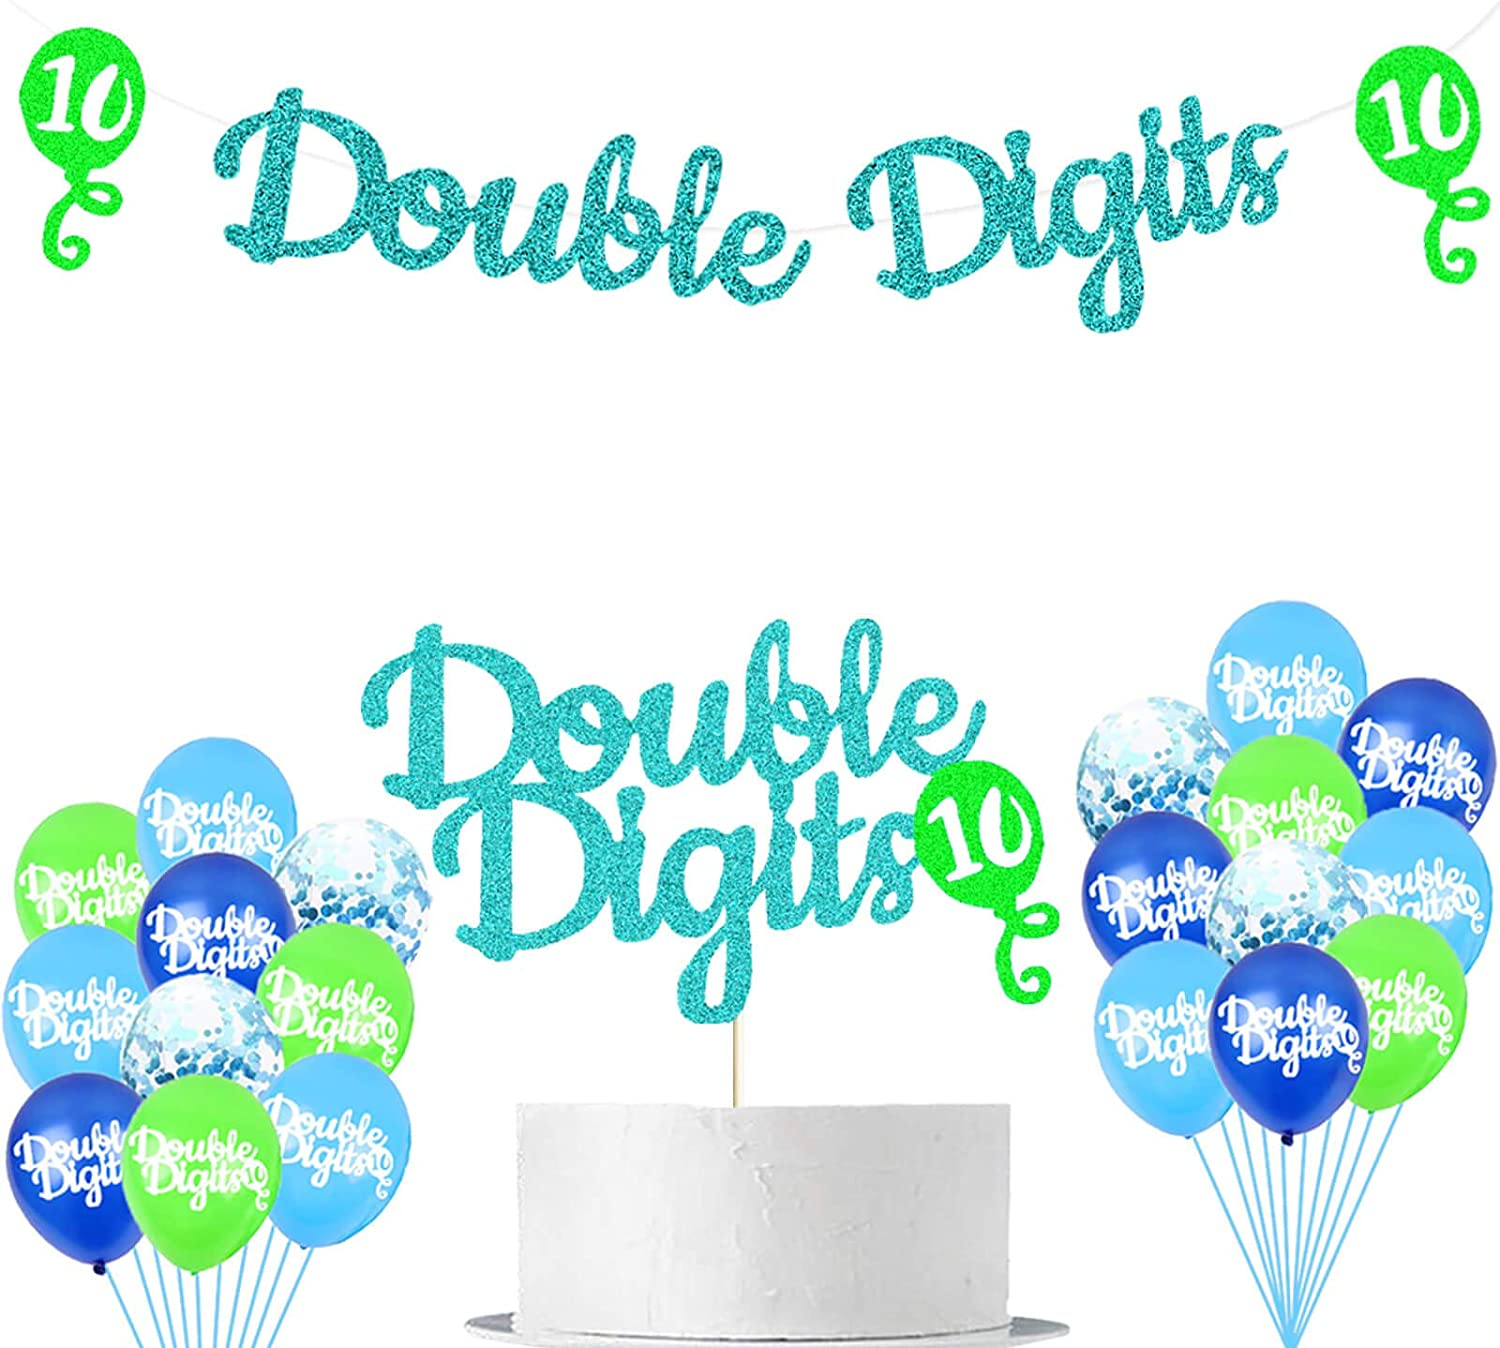 LetDec Happy 10th Birthday Party Supplies Green and Blue Glittery Double Digits Birthday Banners Balloons Cake Topper Hello 10/10 & Fabulous Themed Boys Tenth Birthday Party Supplies Decorations